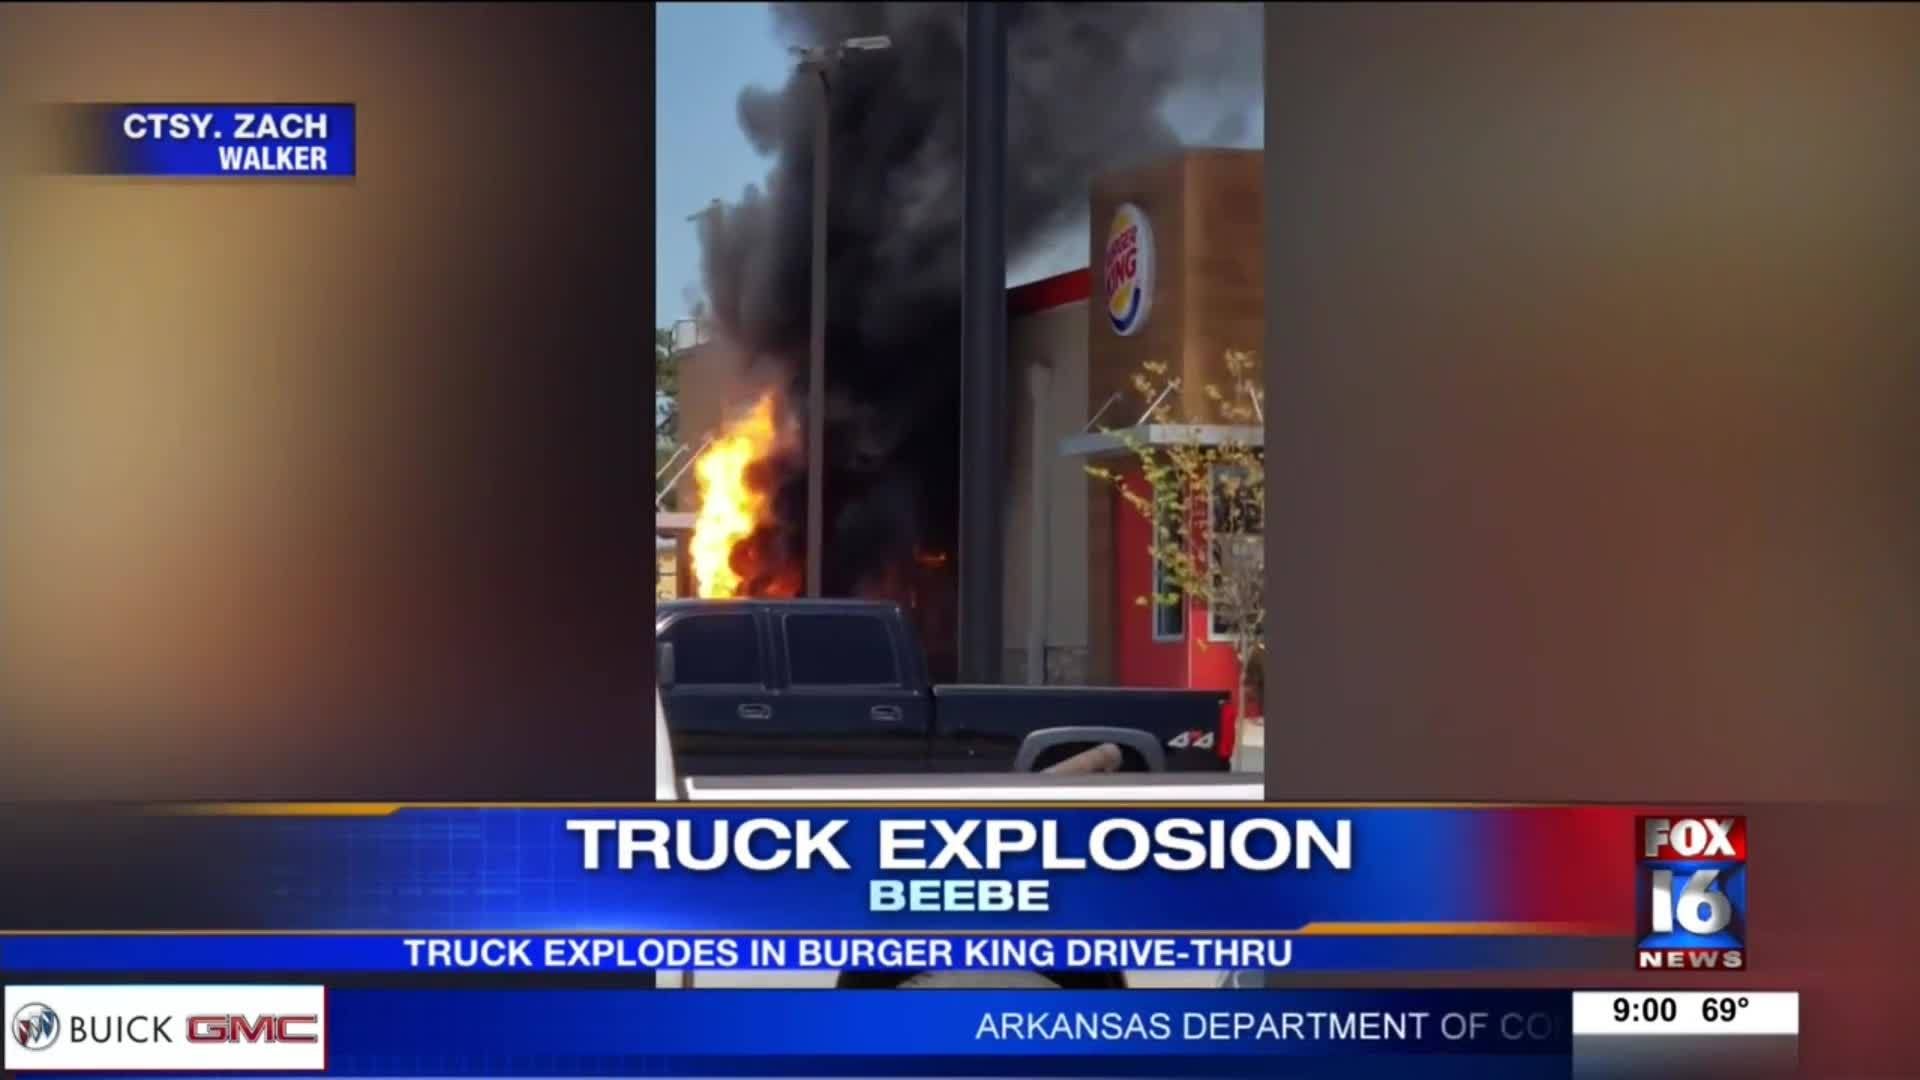 Truck_explodes_in_flames_at_Beebe_Burger_3_20190427022529